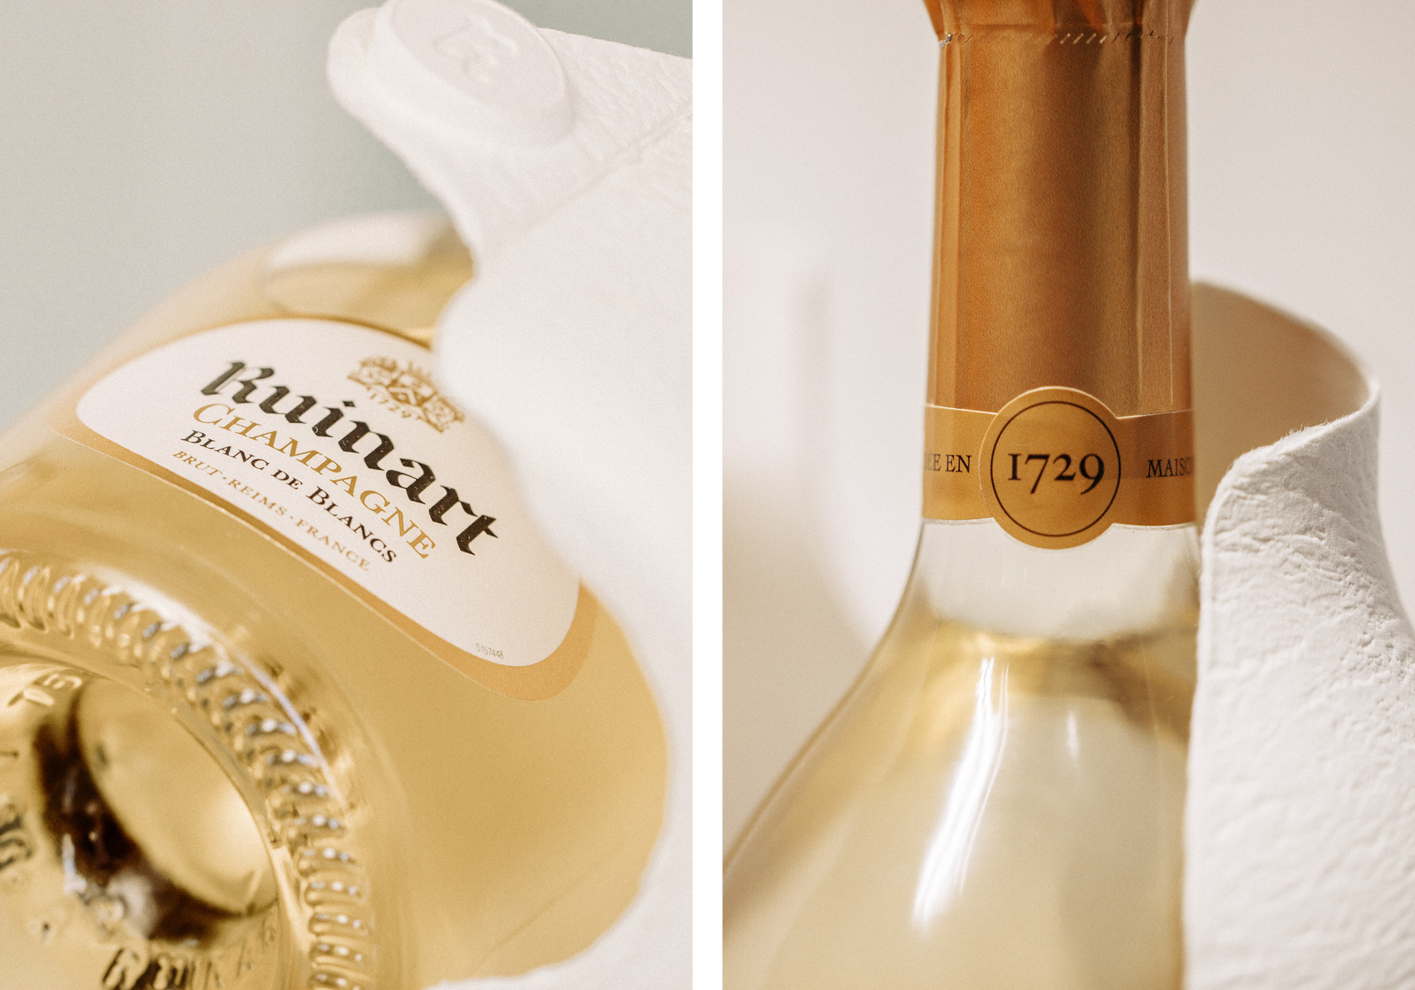 Ruinart's second skin hugs the contours of each champagne bottle